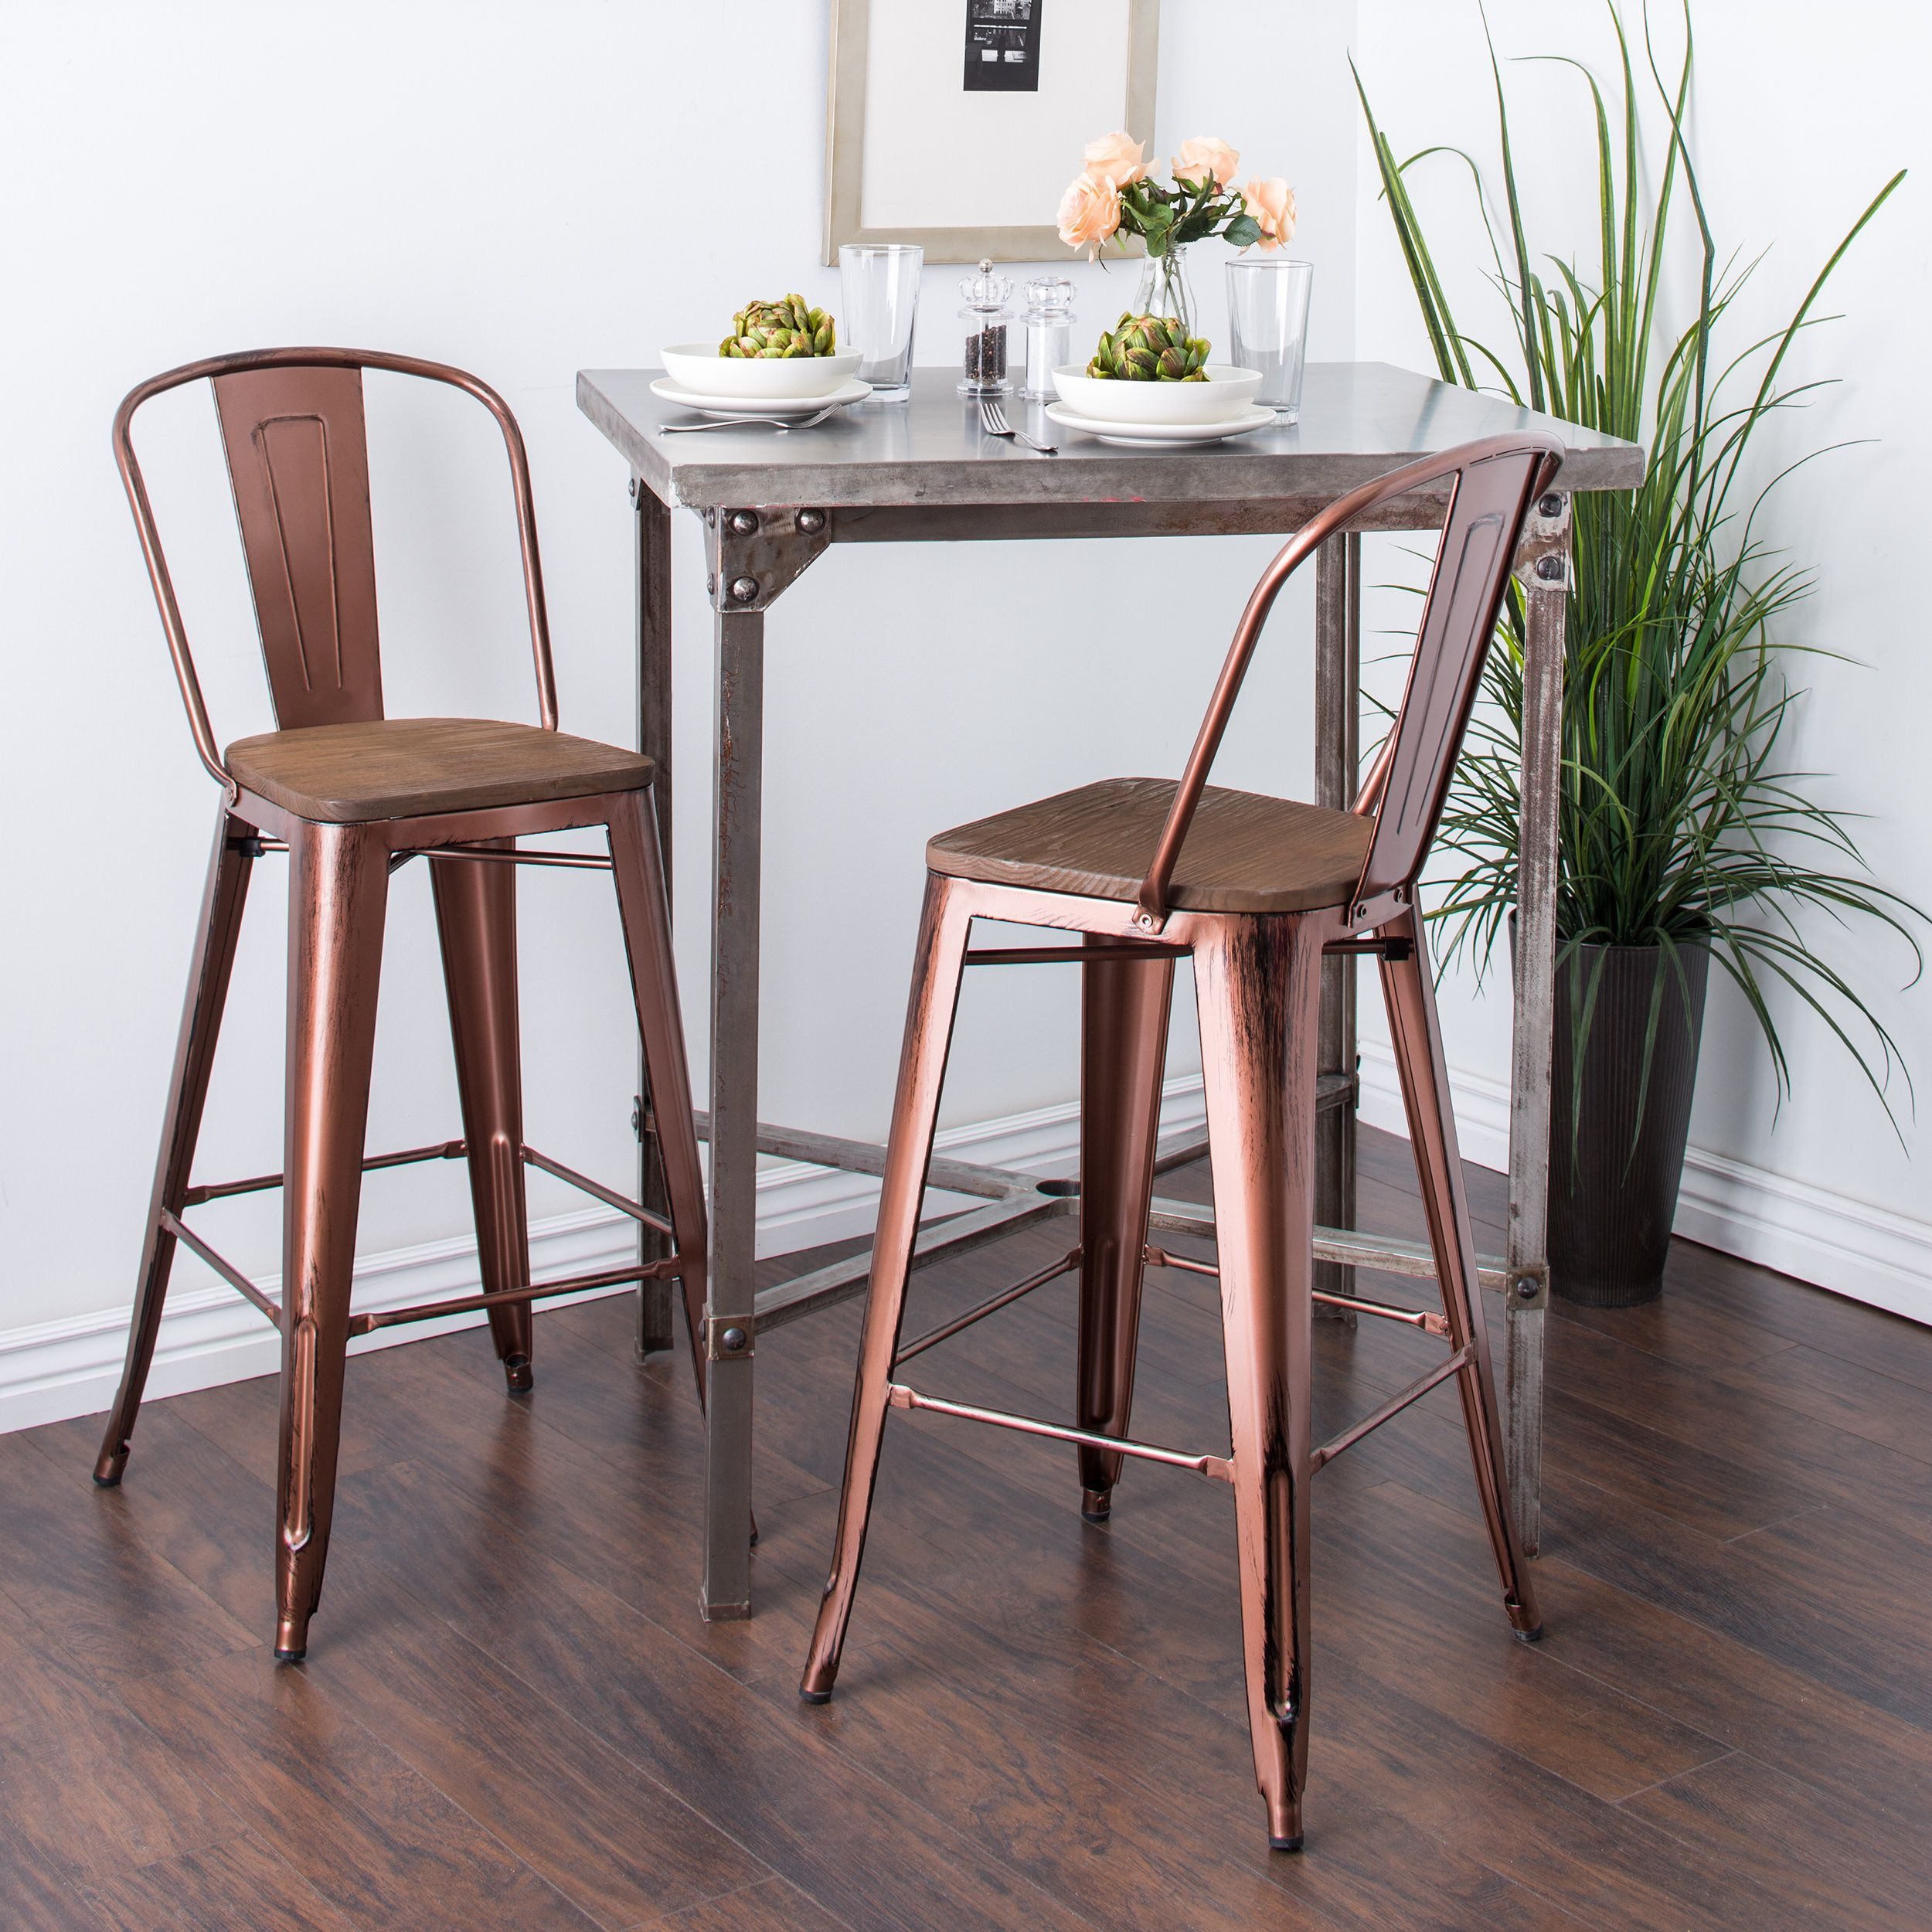 Fresh Unfinished Wood Bar Stools wholesale